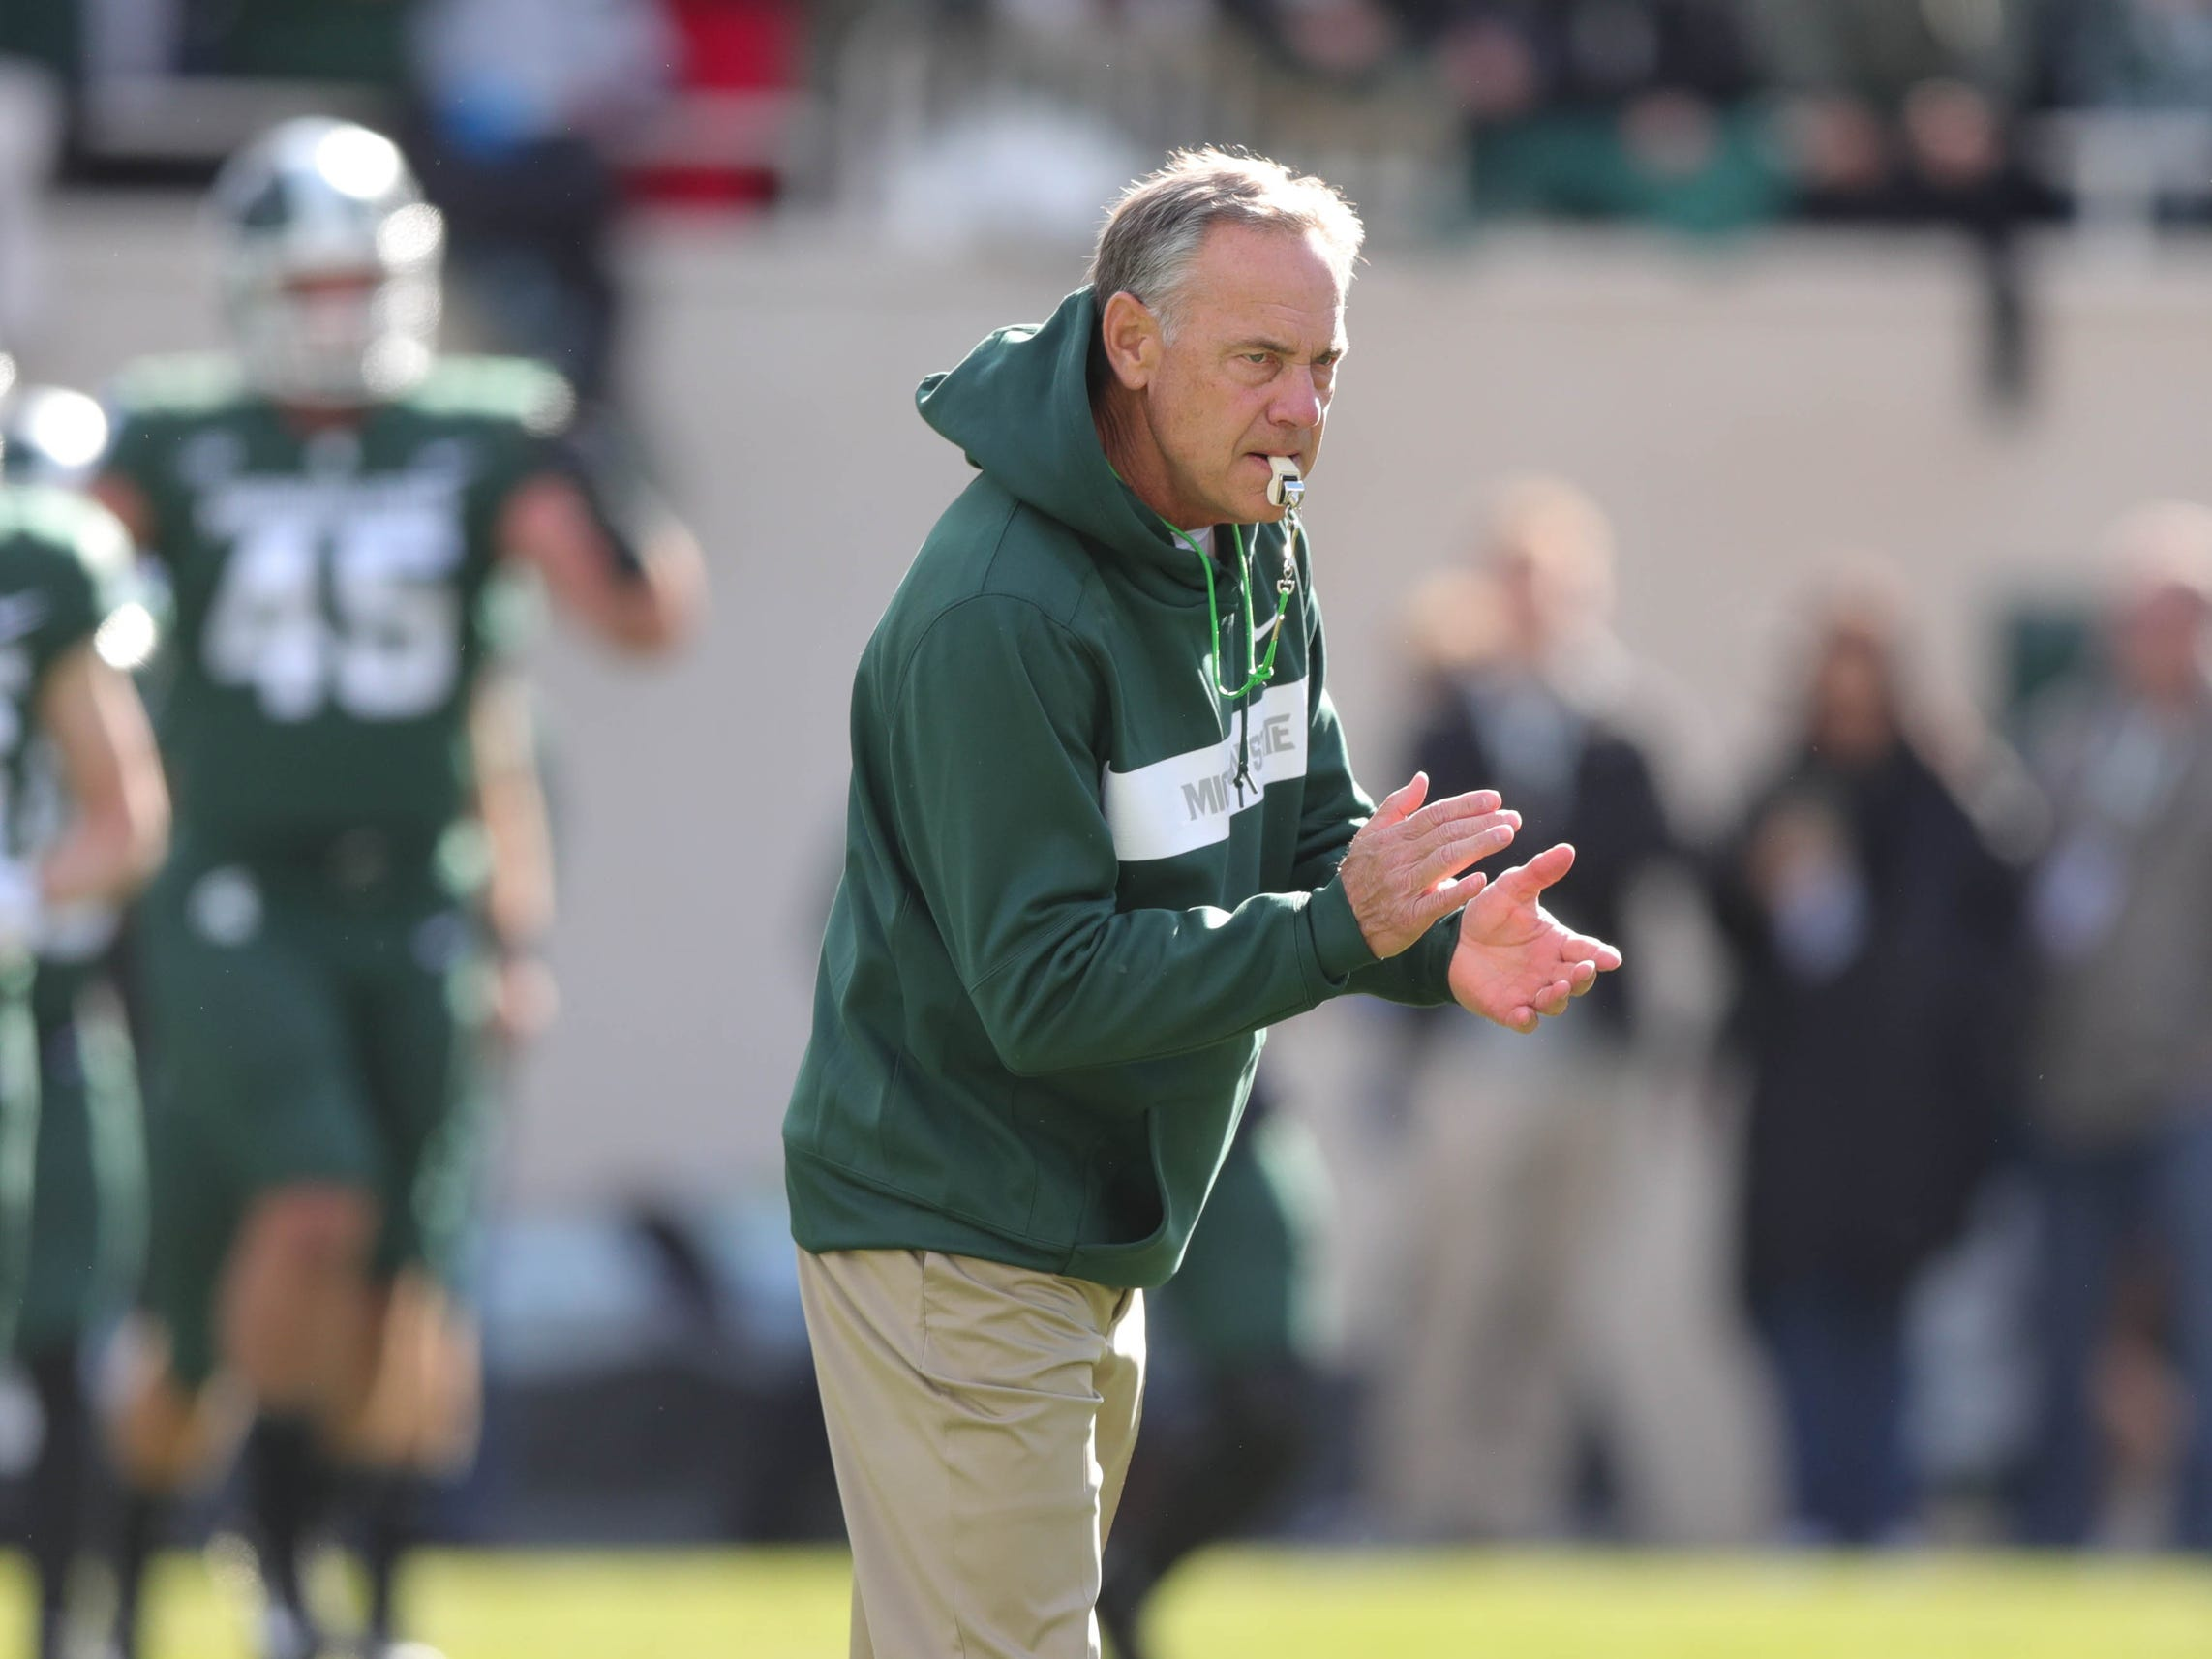 Michigan State head coach Mark Dantonio watches his team warm up before action against Michigan on Saturday, Oct. 20, 2018, at Spartan Stadium in East Lansing, Mich.